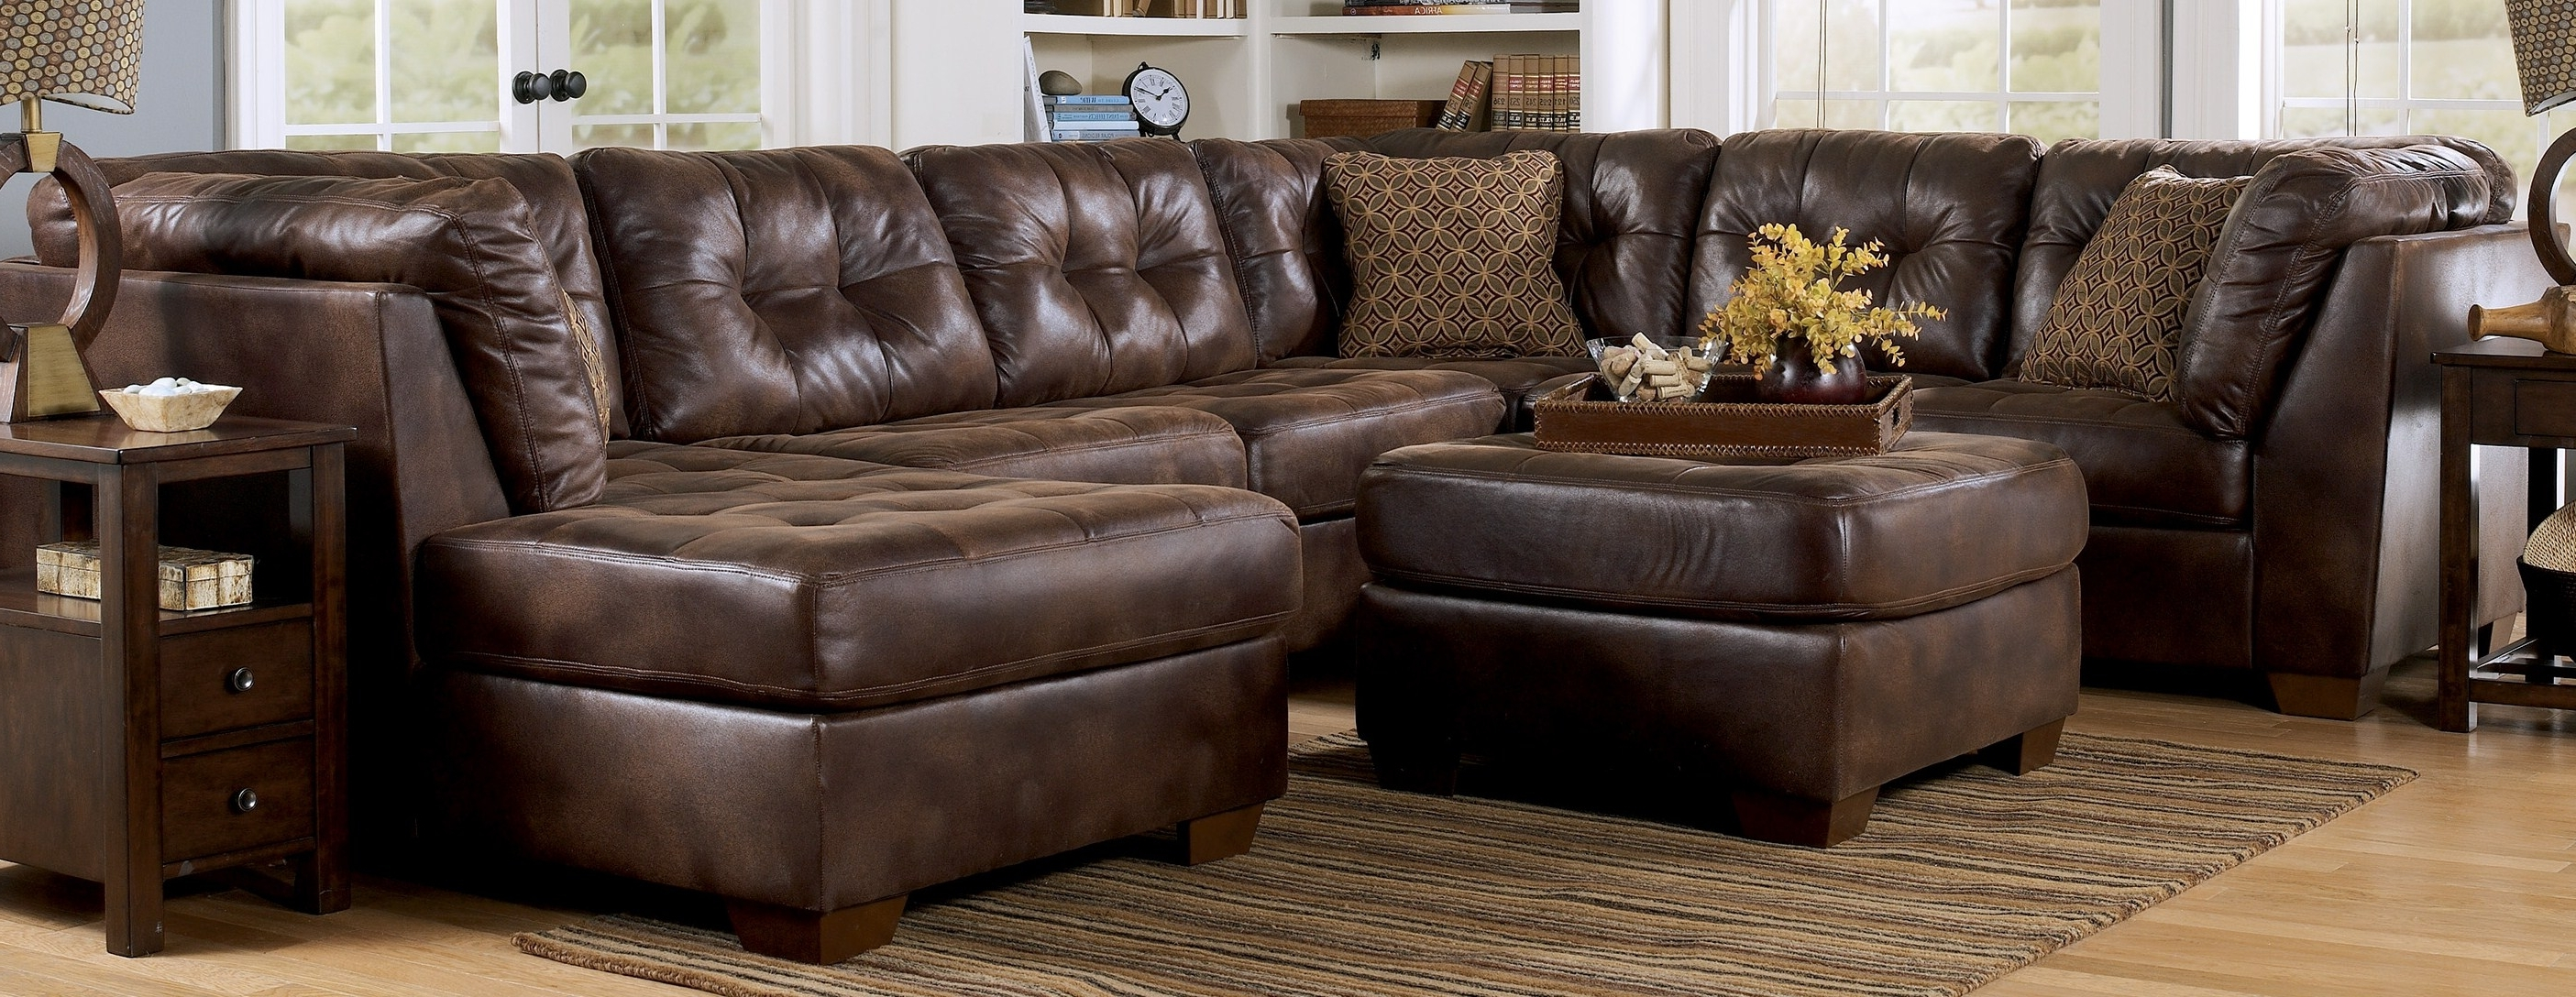 2019 Luxury Leather Sectional Sleeper Sofa With Chaise 34 Contemporary Pertaining To Sectional Sleeper Sofas With Ottoman (View 2 of 20)